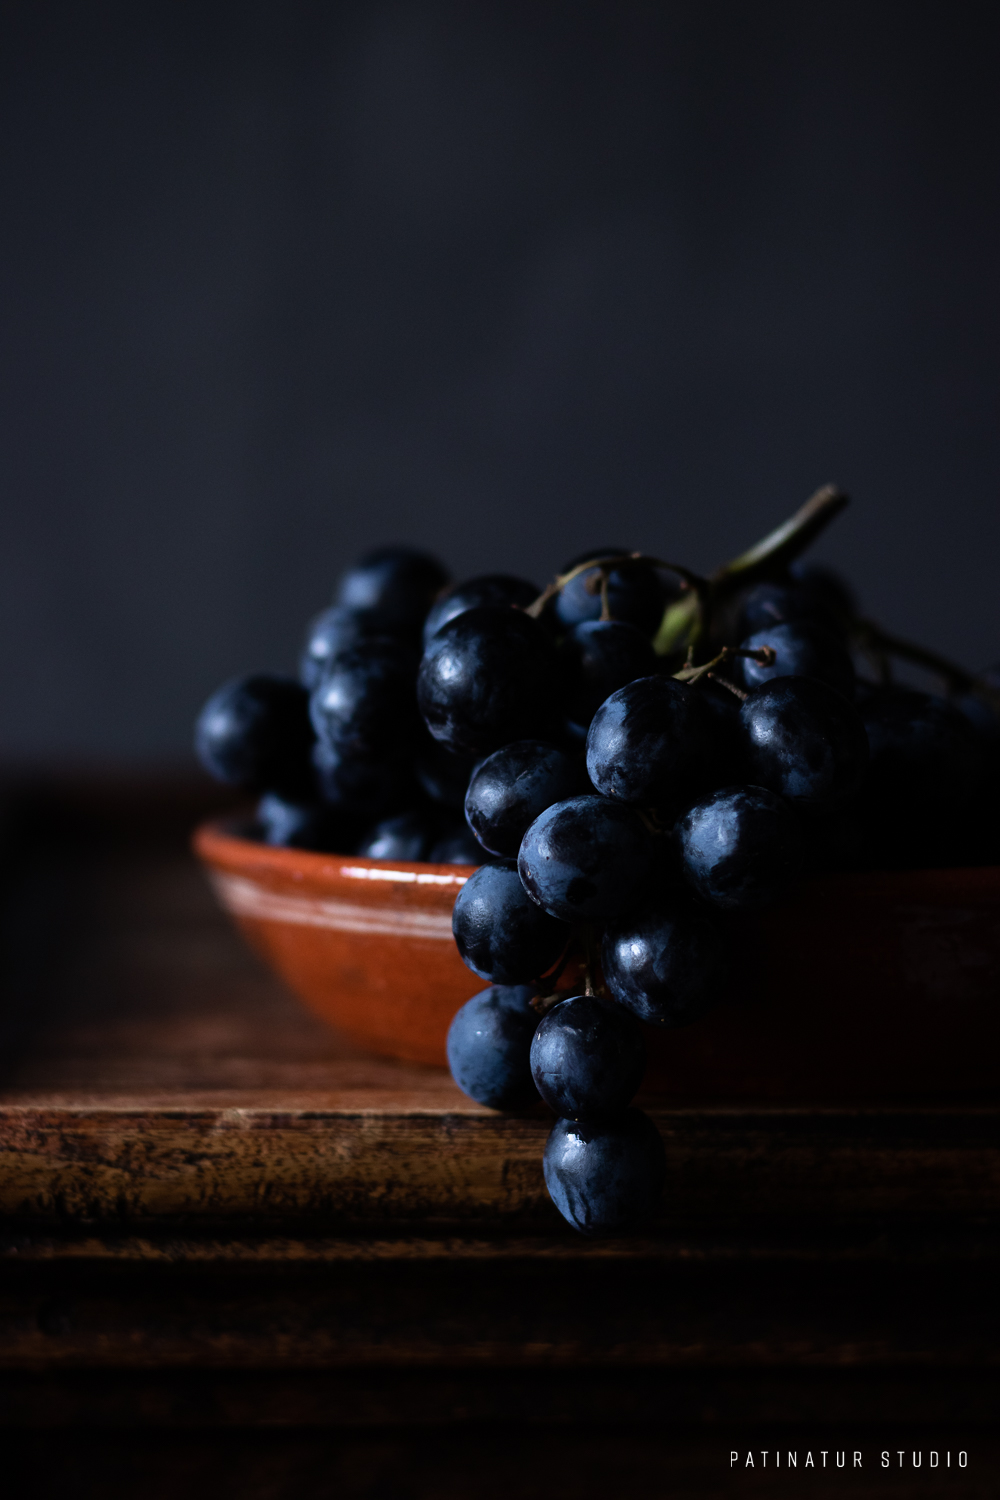 Photo art | Dark and moody still life with grapes in rustic terracotta bowl